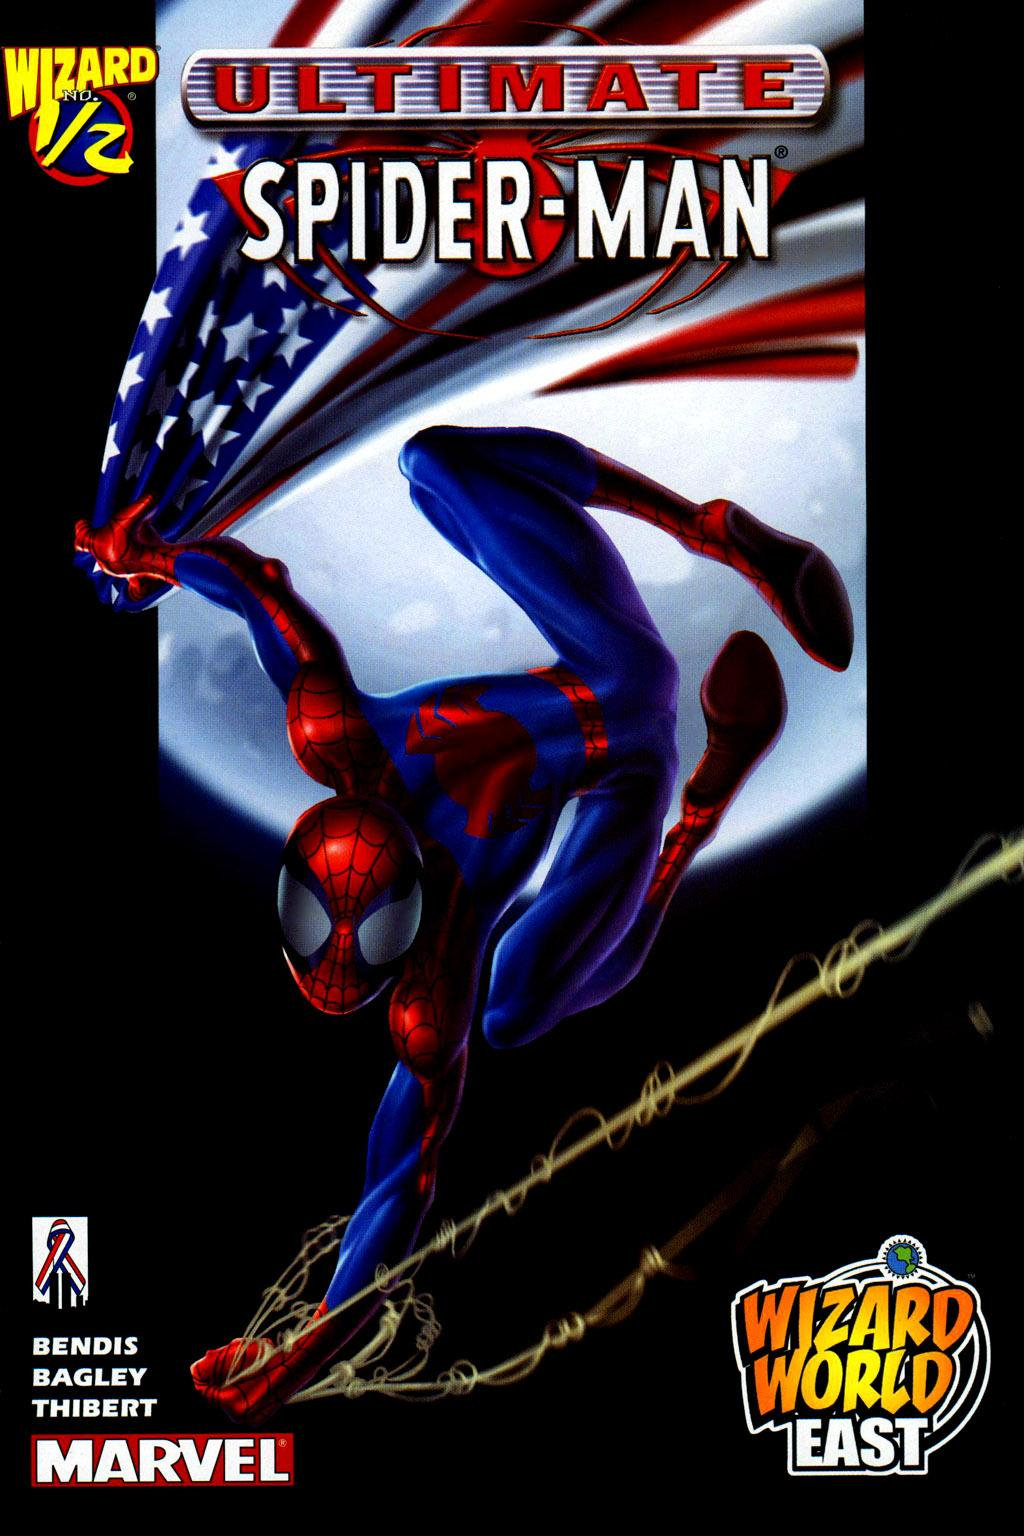 Ultimate Spider-Man #1//2 Wizard World East 2002